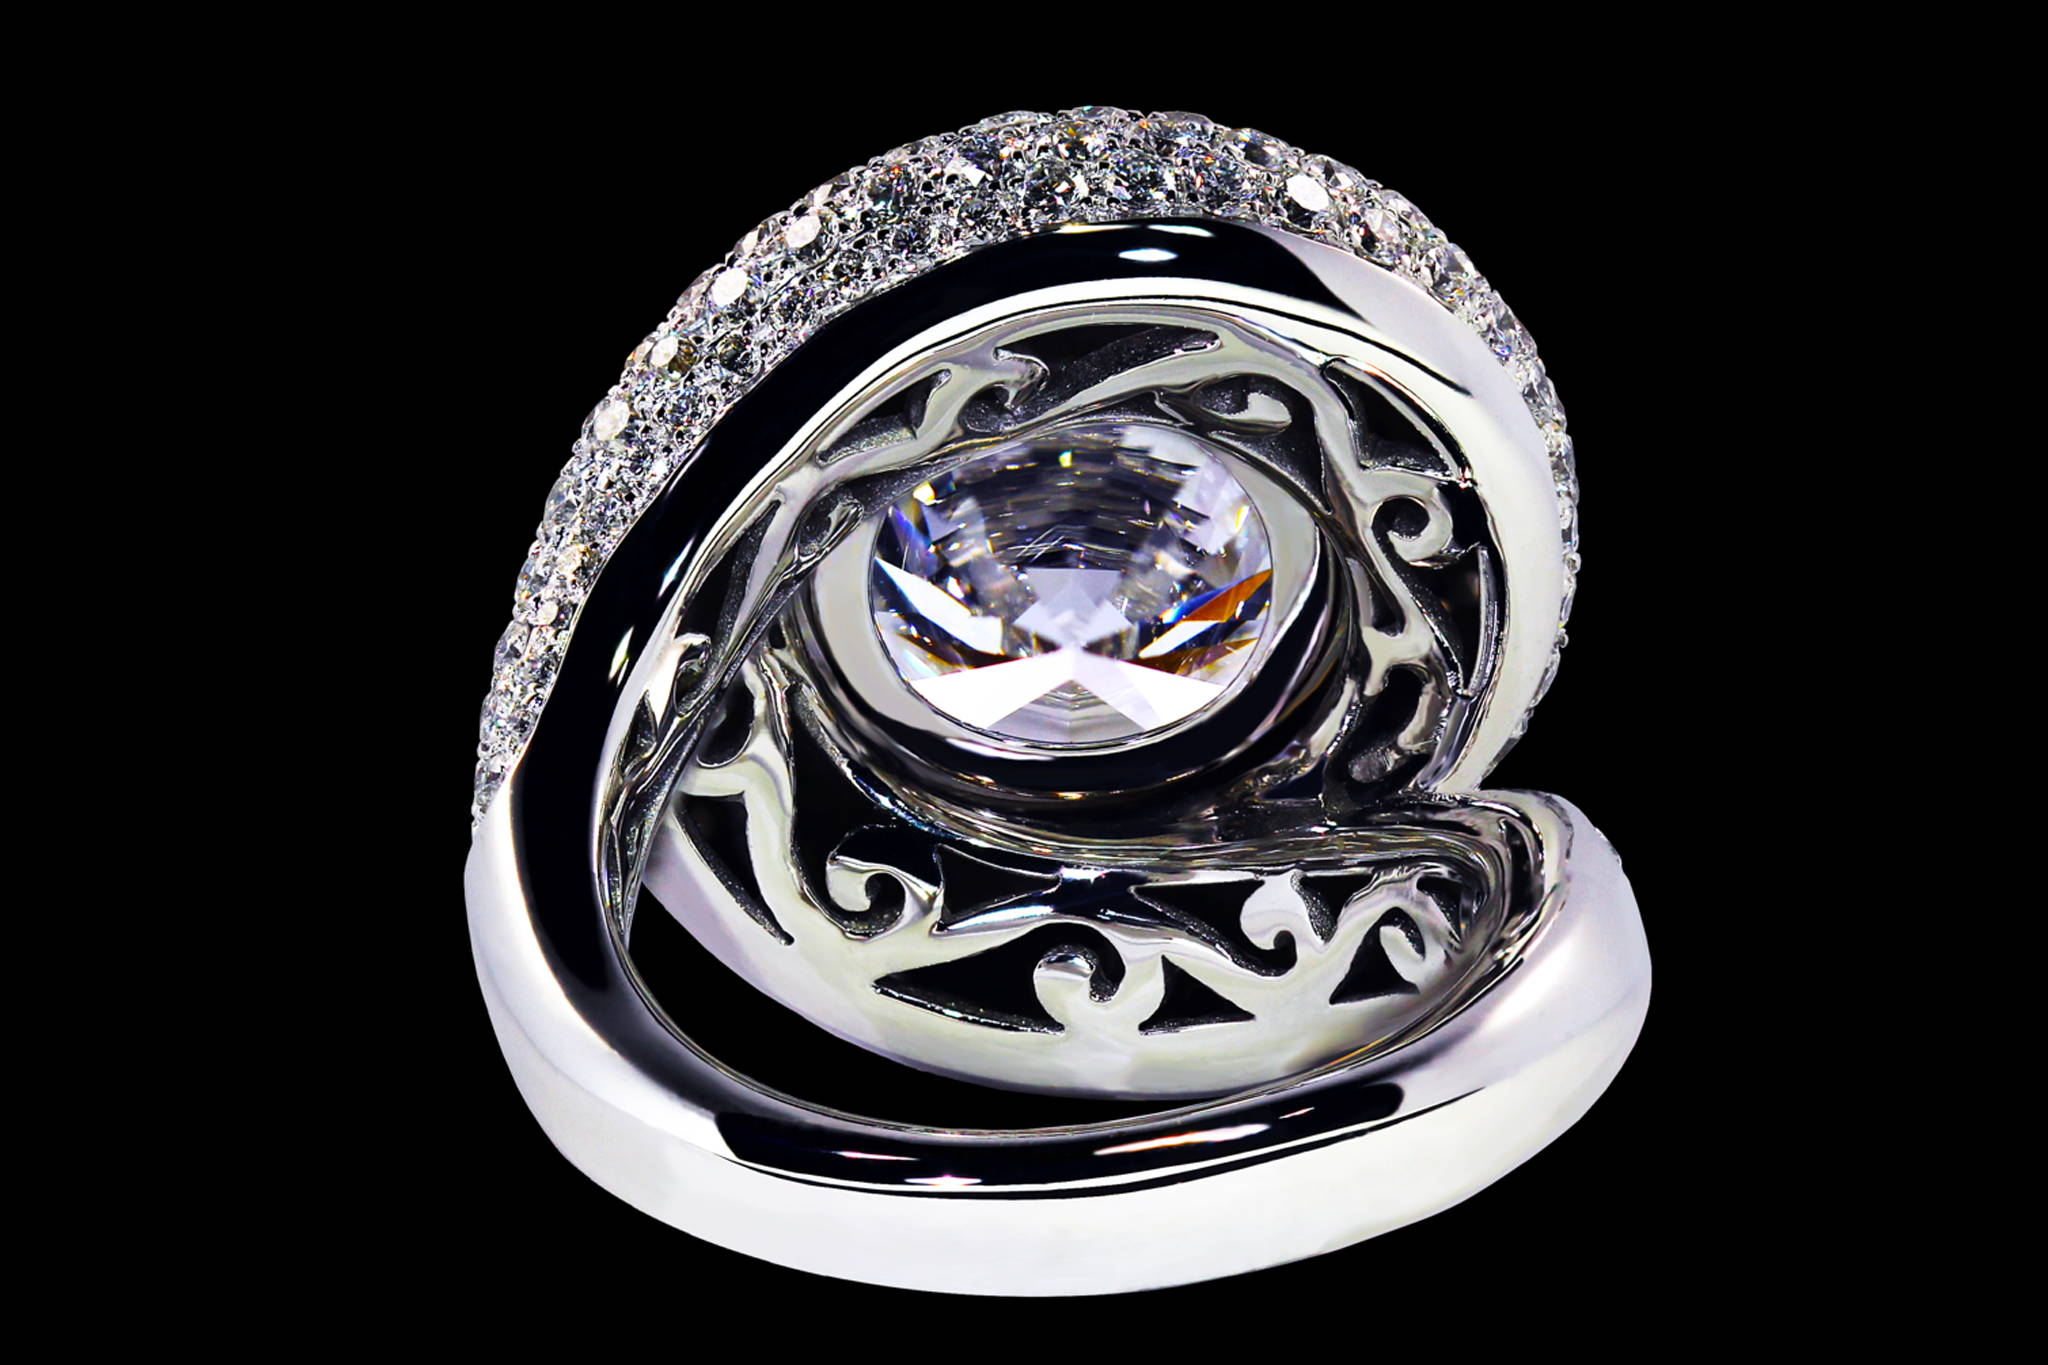 Whirlpool Ring back view